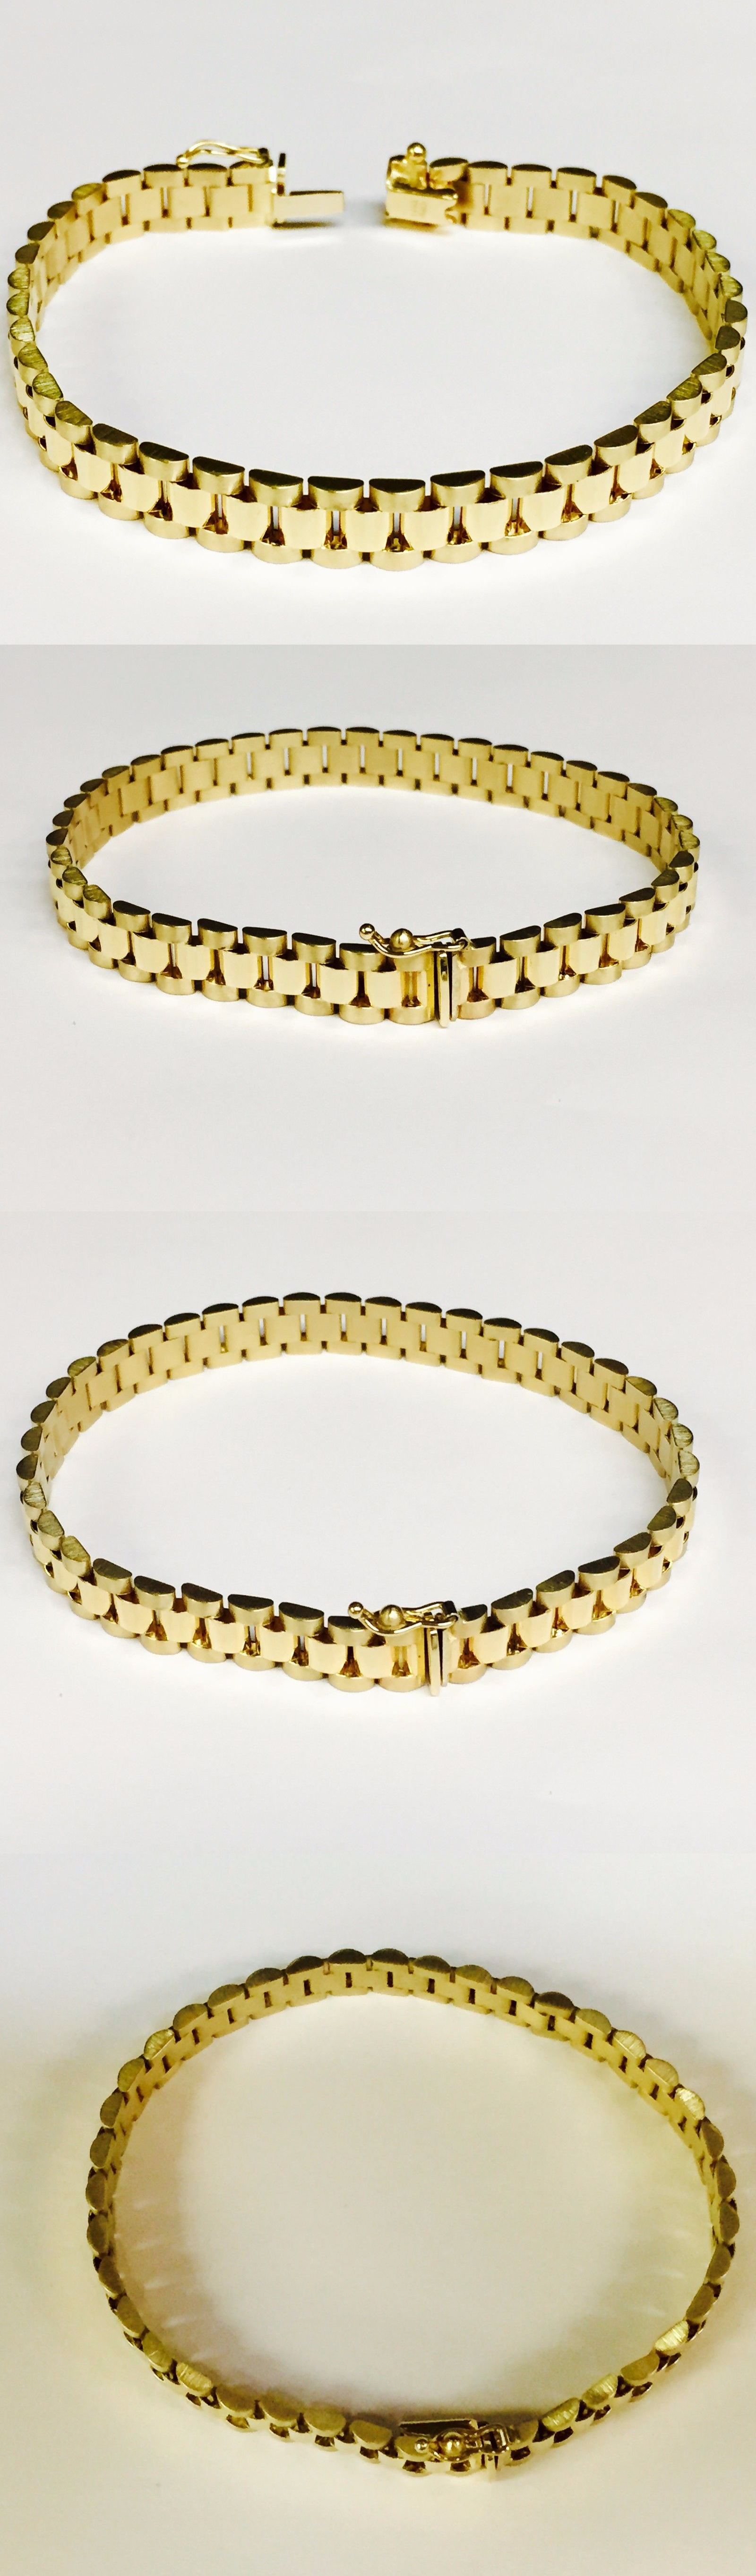 Bracelets kt solid yellow gold rlx style link mens